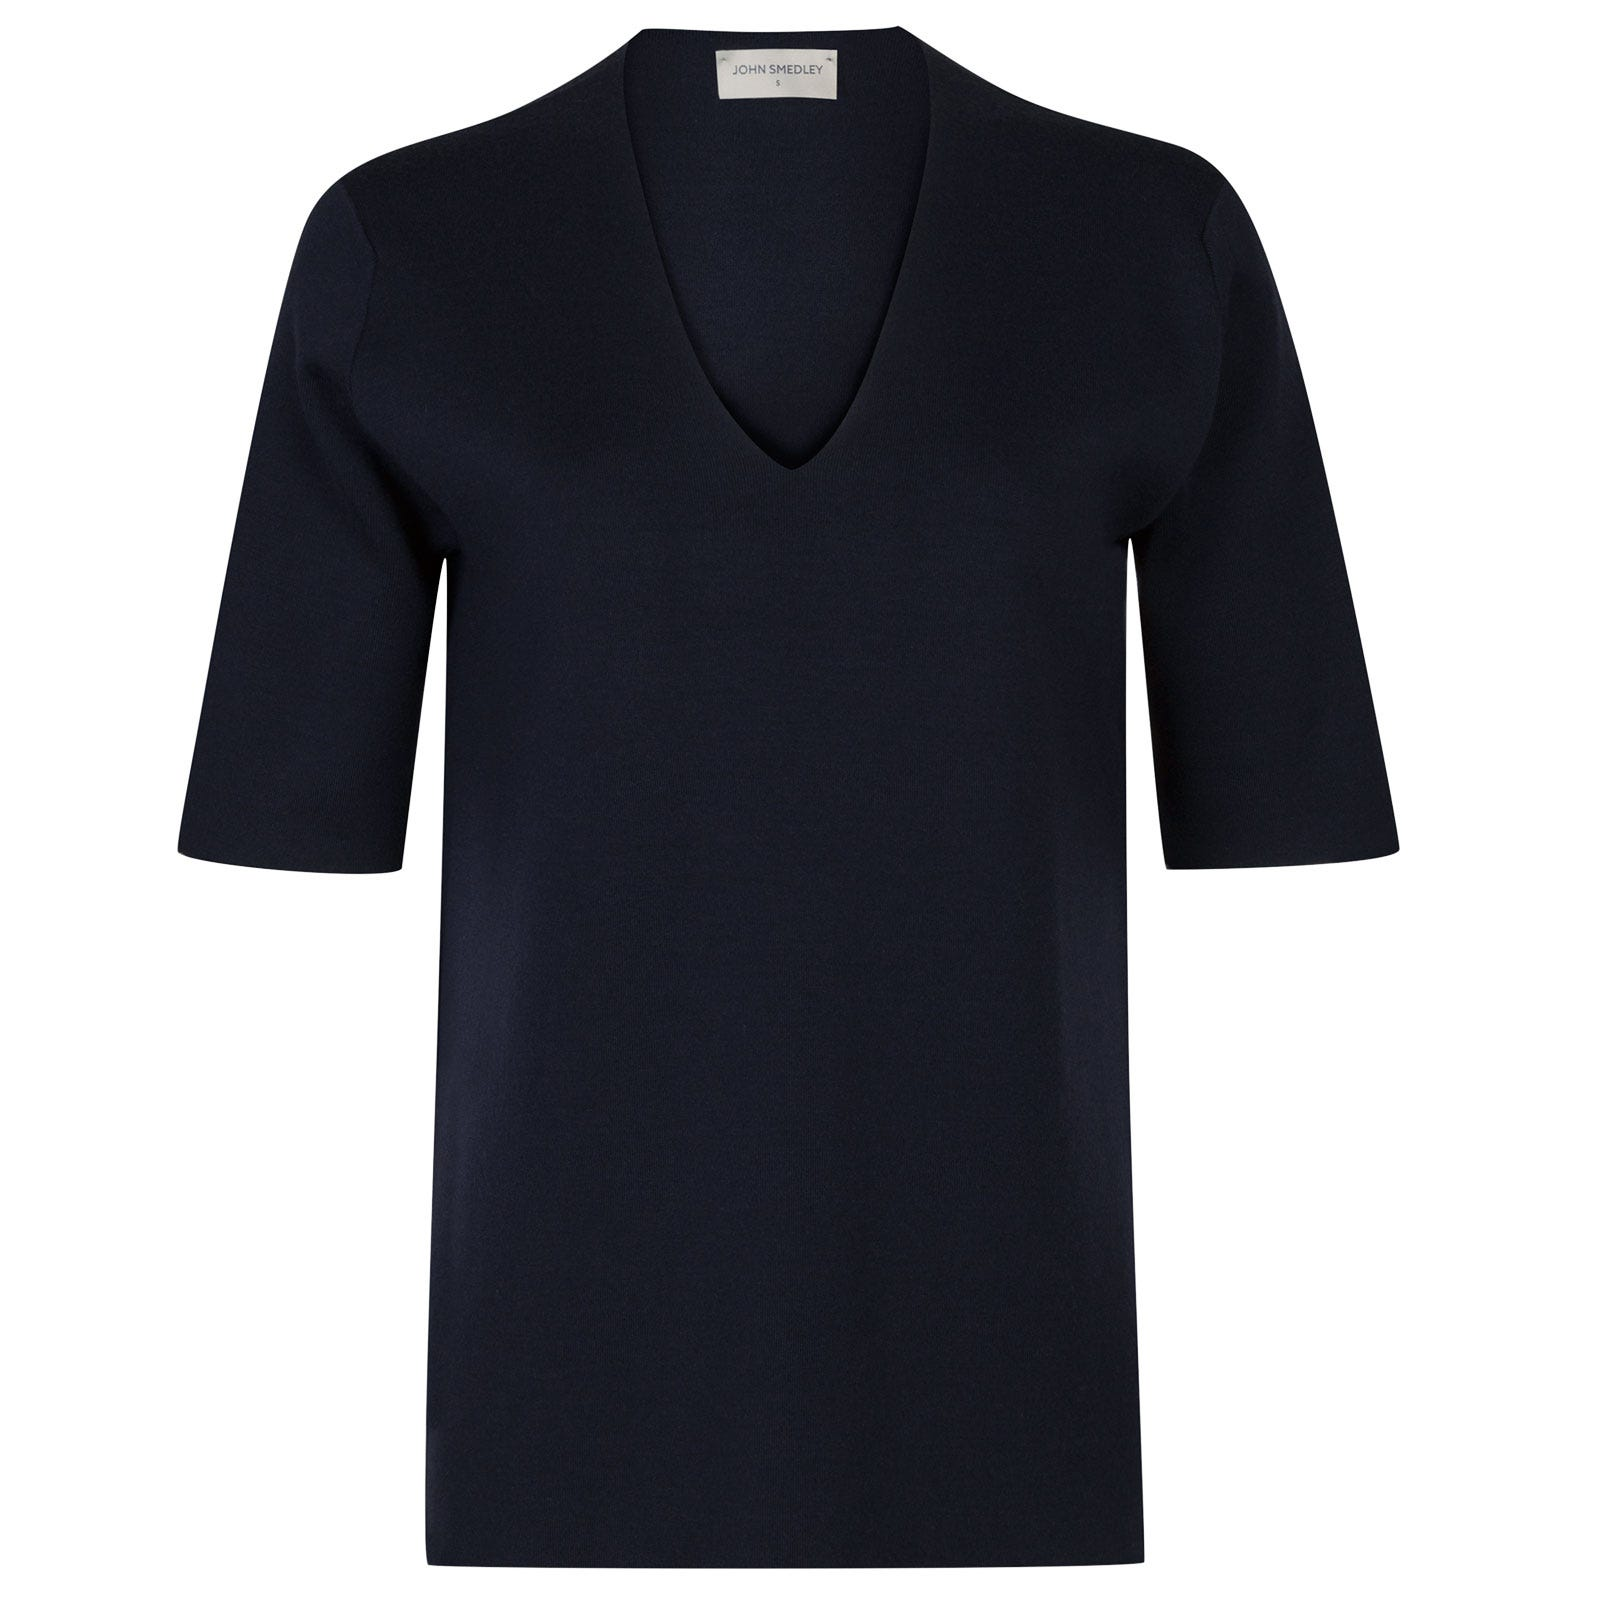 John Smedley purcell Merino Wool Sweater in Midnight-M